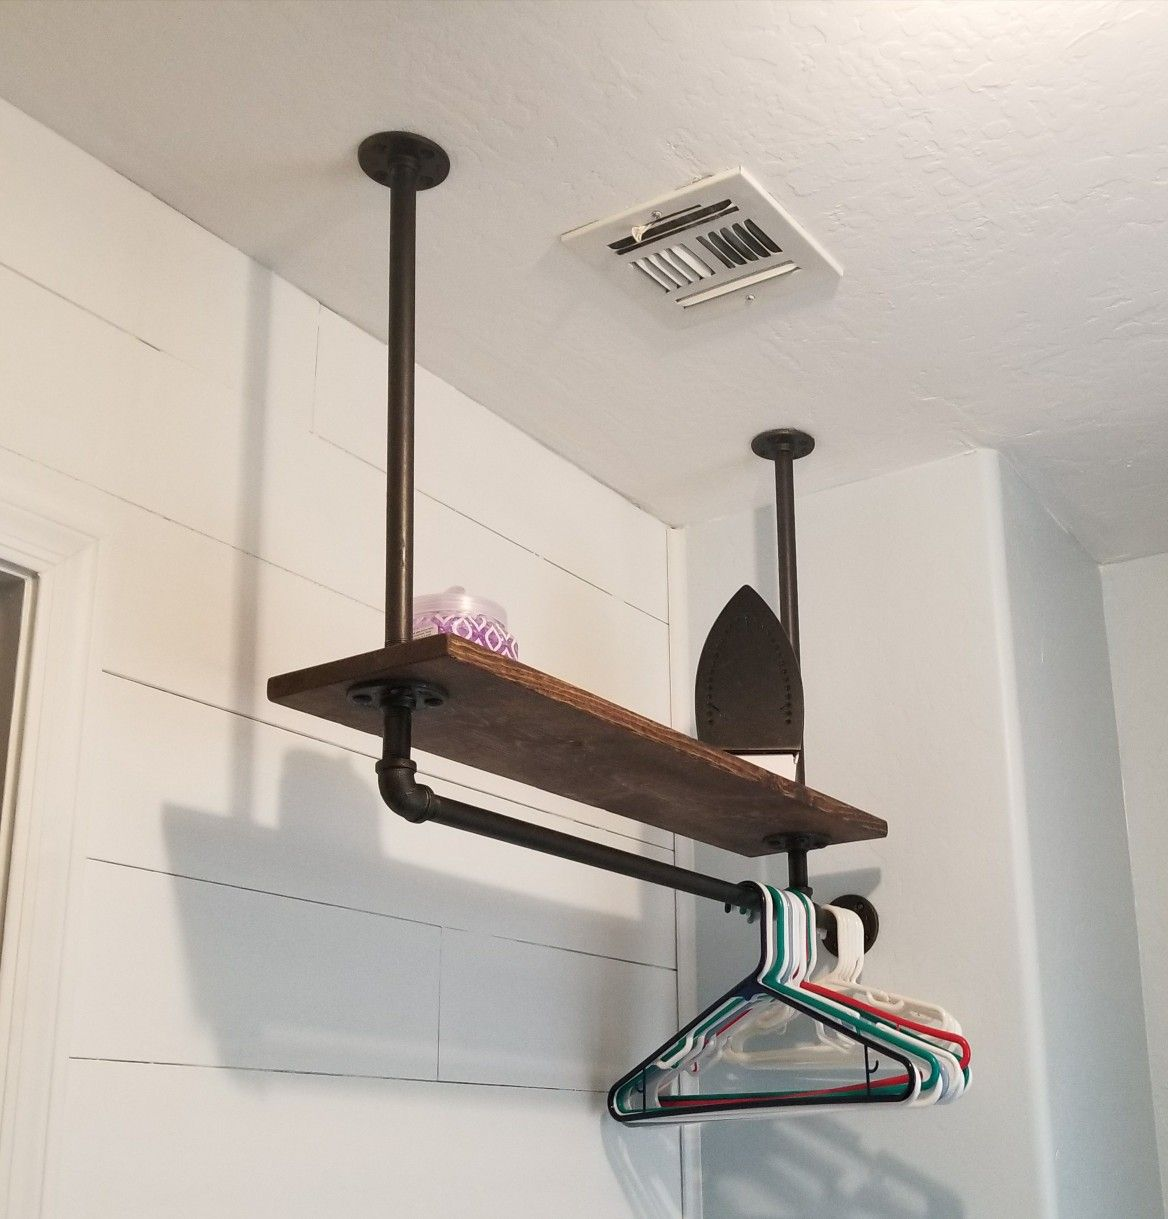 Hanging Pipe Shelf Made From Plumbing Pipe From Home